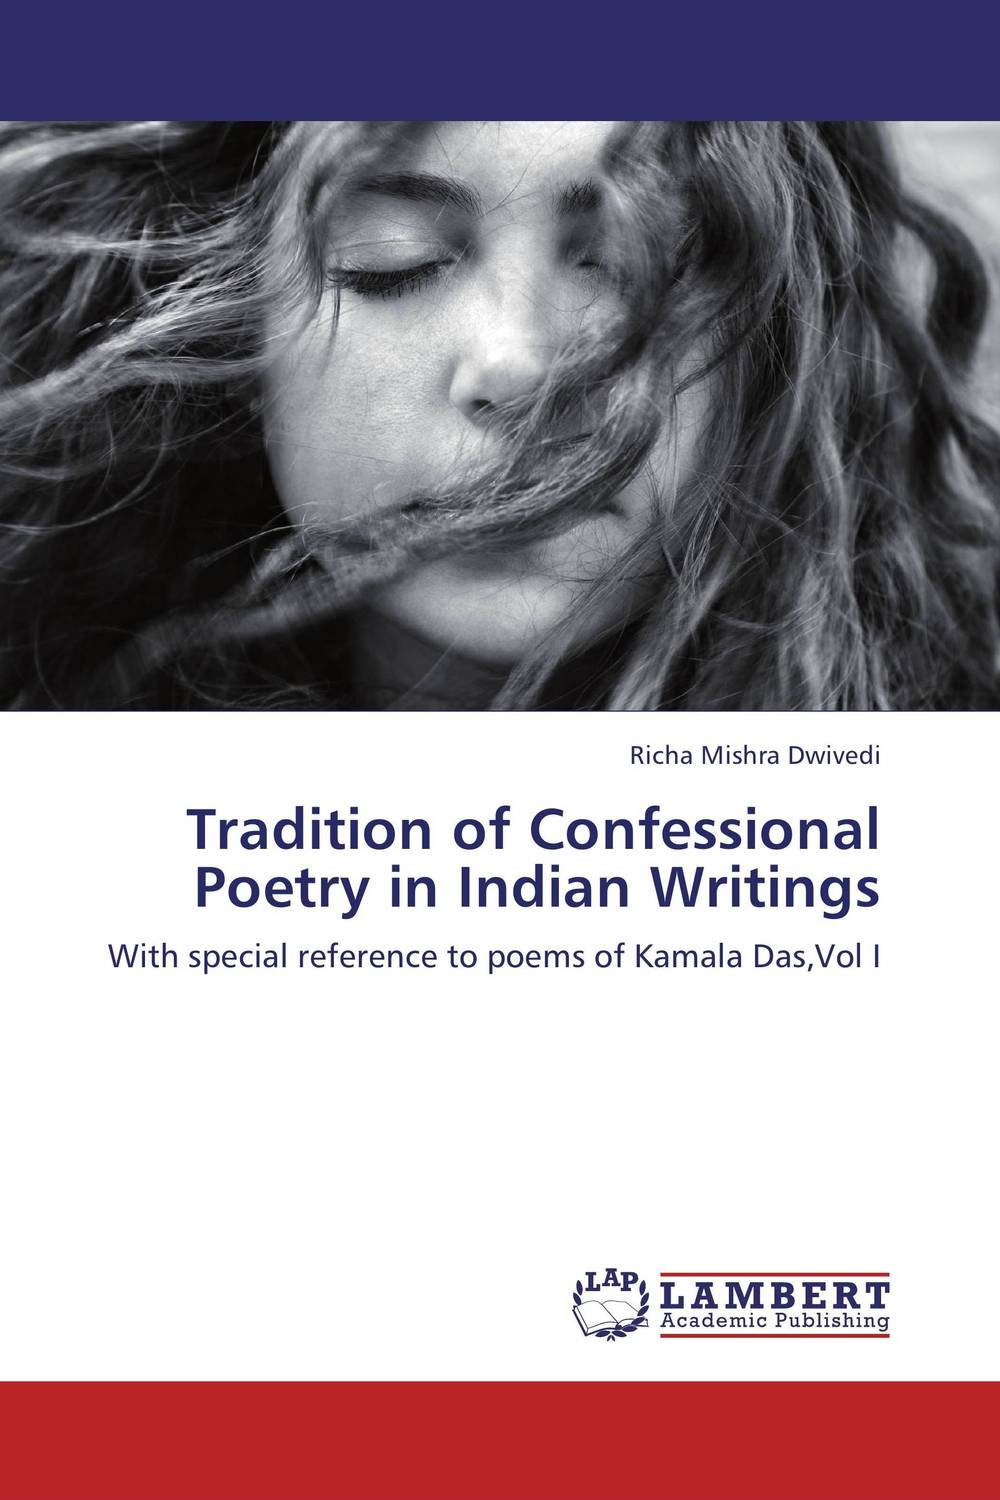 Tradition of Confessional Poetry in Indian Writings kishore ram indian readings on indian writings in english